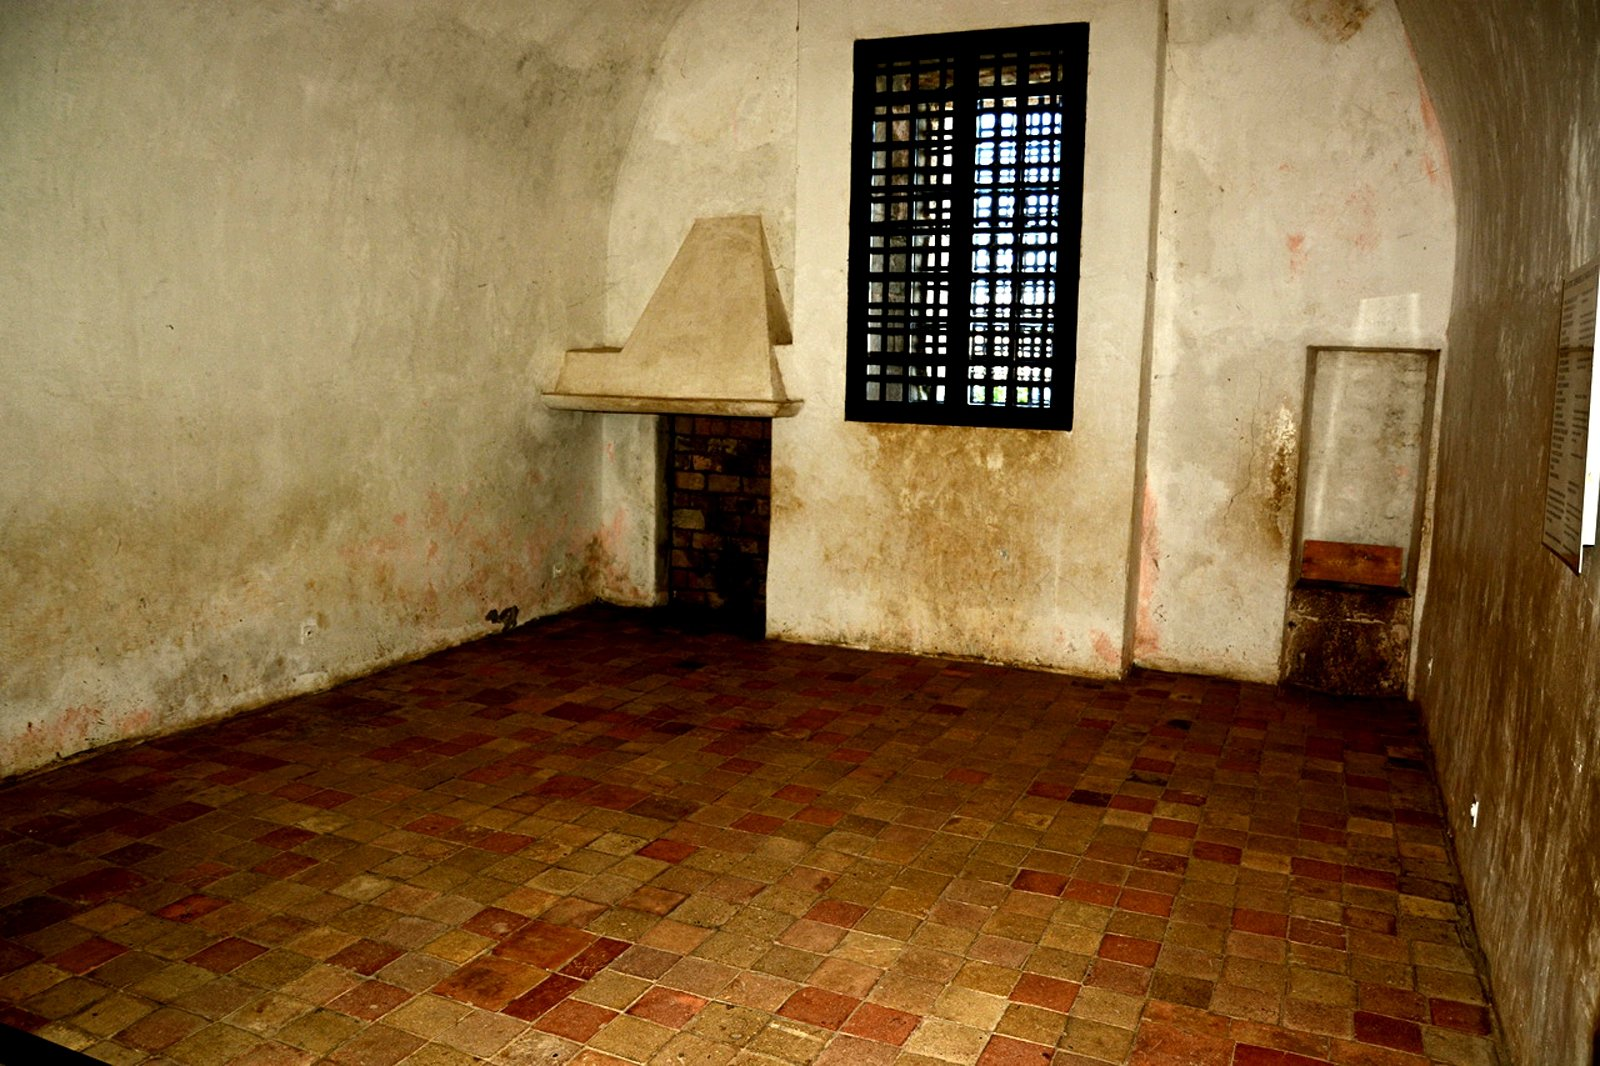 How to visit the Iron Mask prison cell in Cannes